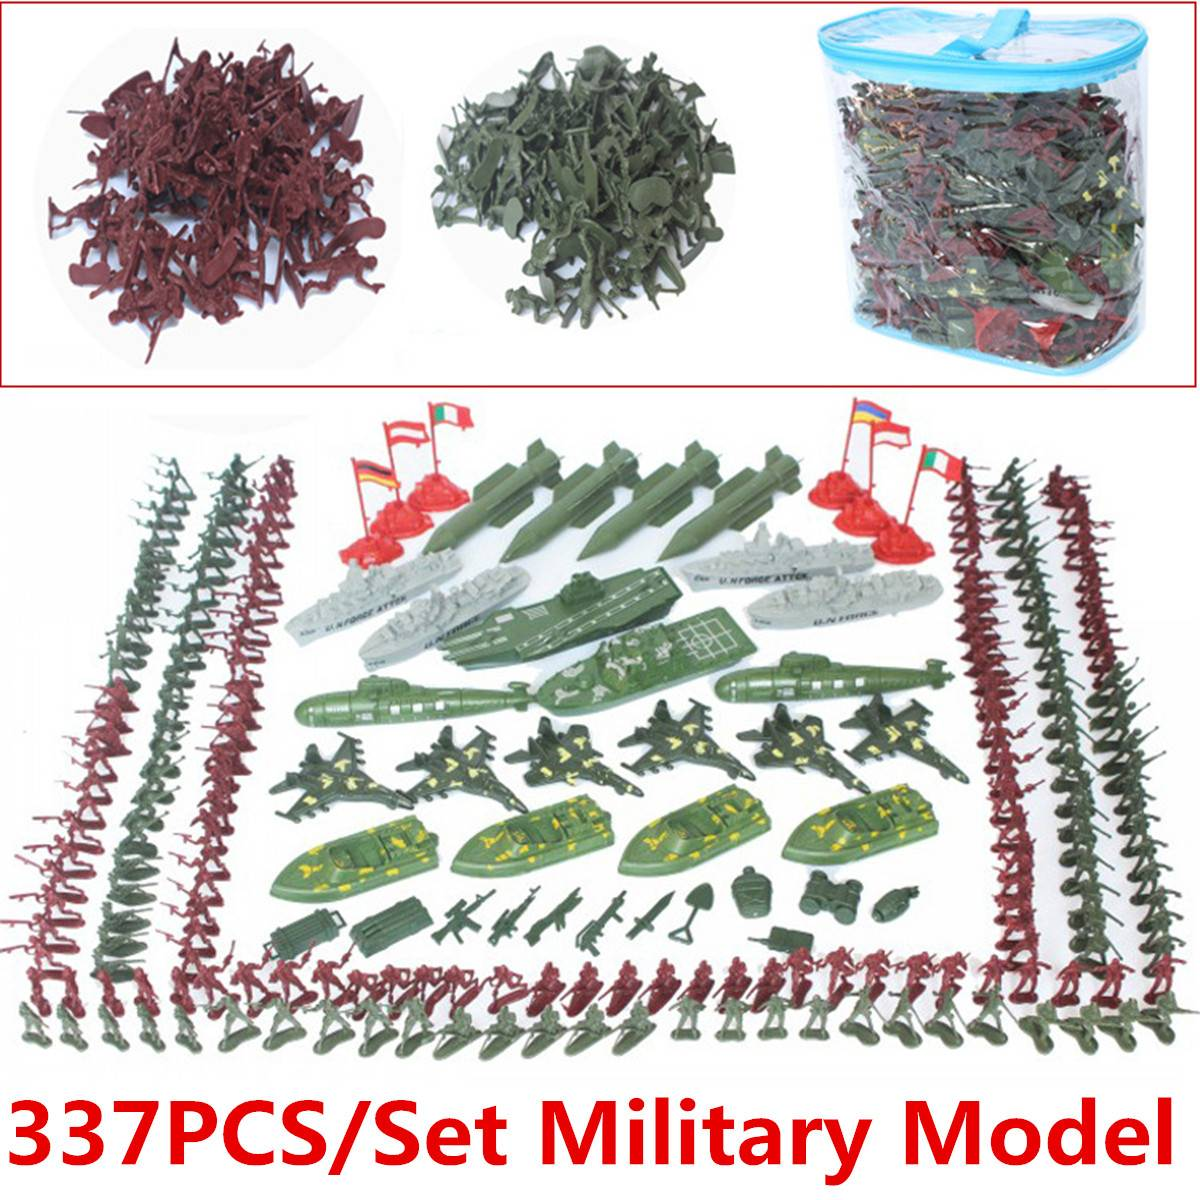 Action & Toy Figures Precise 337pcs/set Plastic Army Men Figures Gift Toy 4cm Soldiers Military Toy Model Action Figure Sandbox Games Toys For Children Boys At All Costs